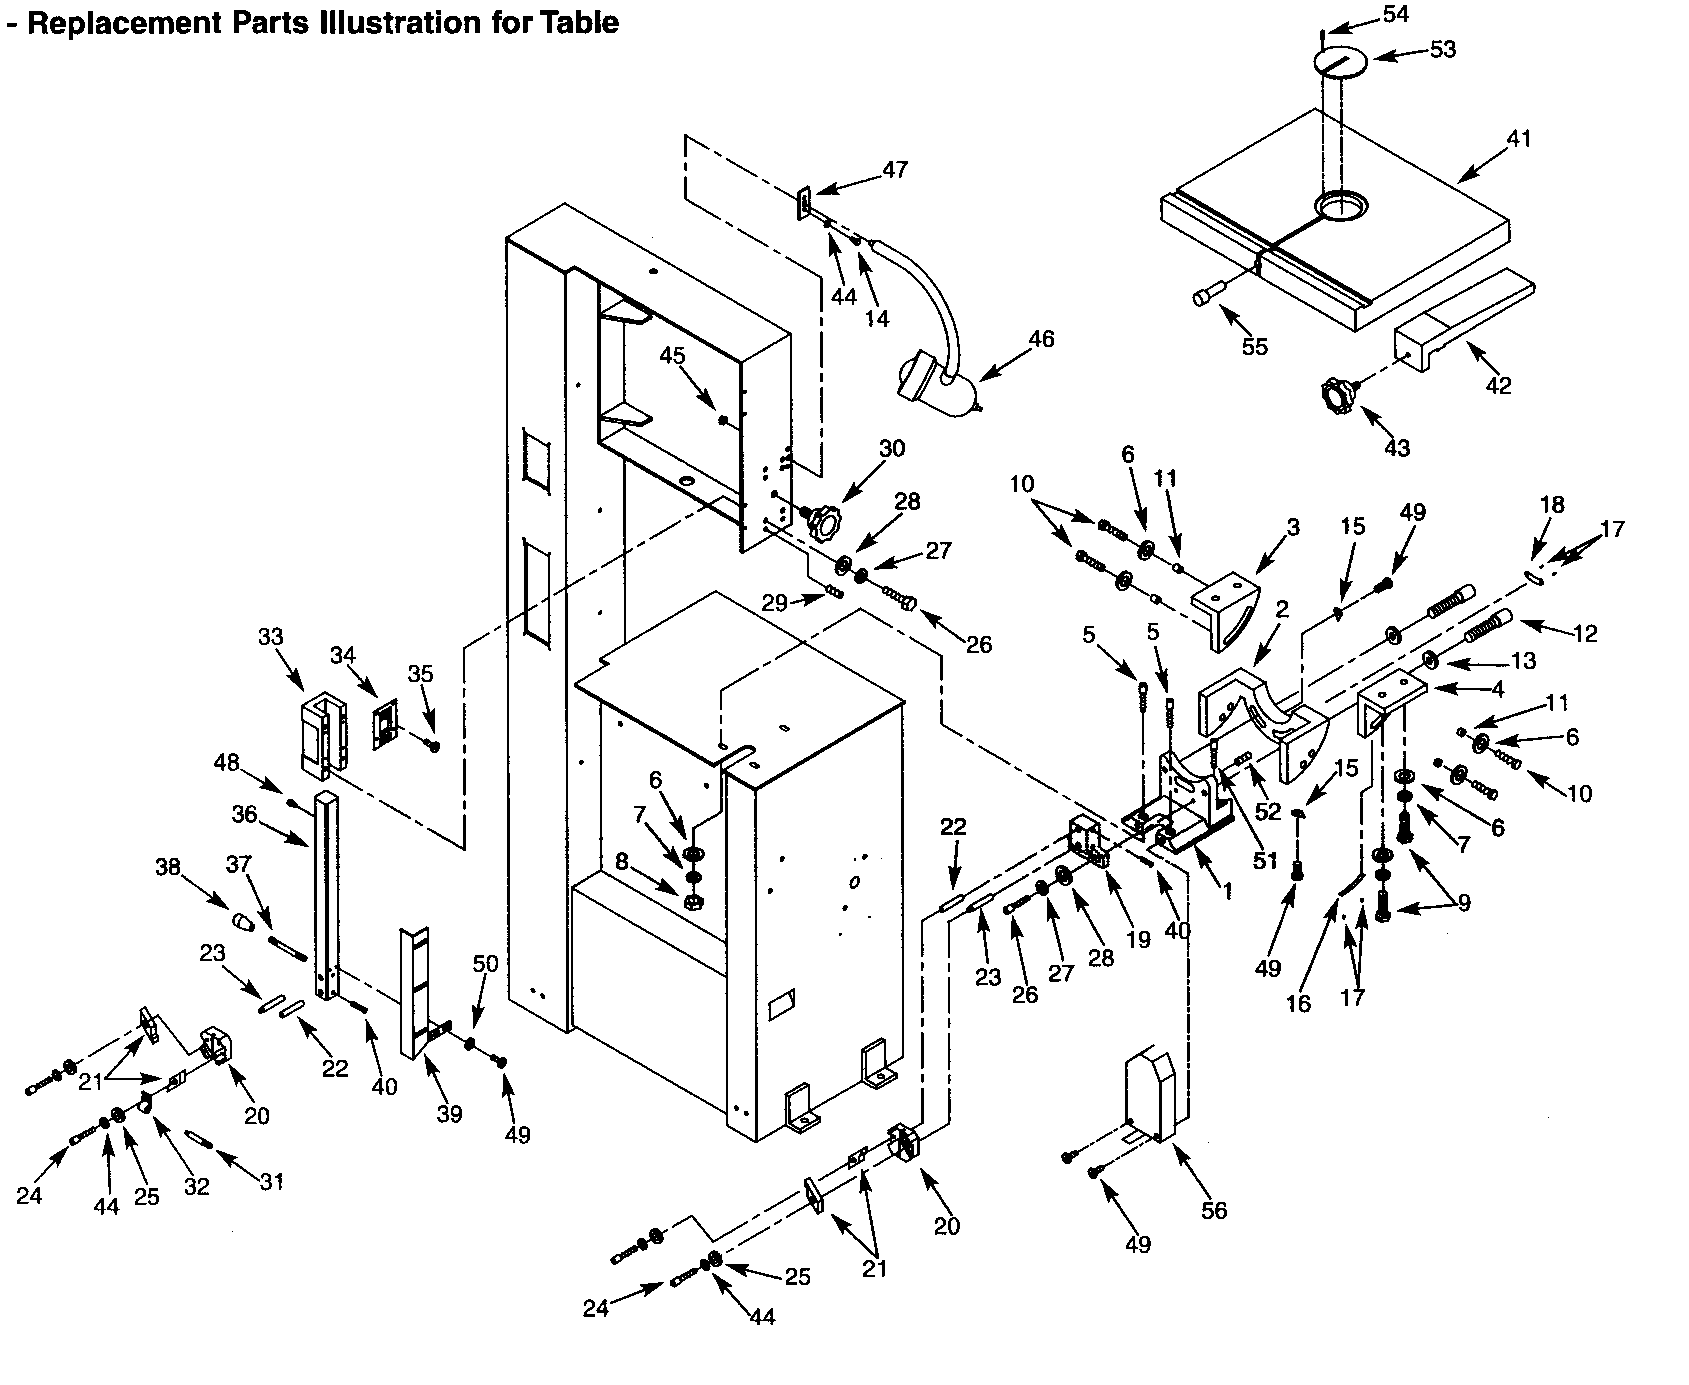 TABLE ASSY Diagram & Parts List for Model 351214300